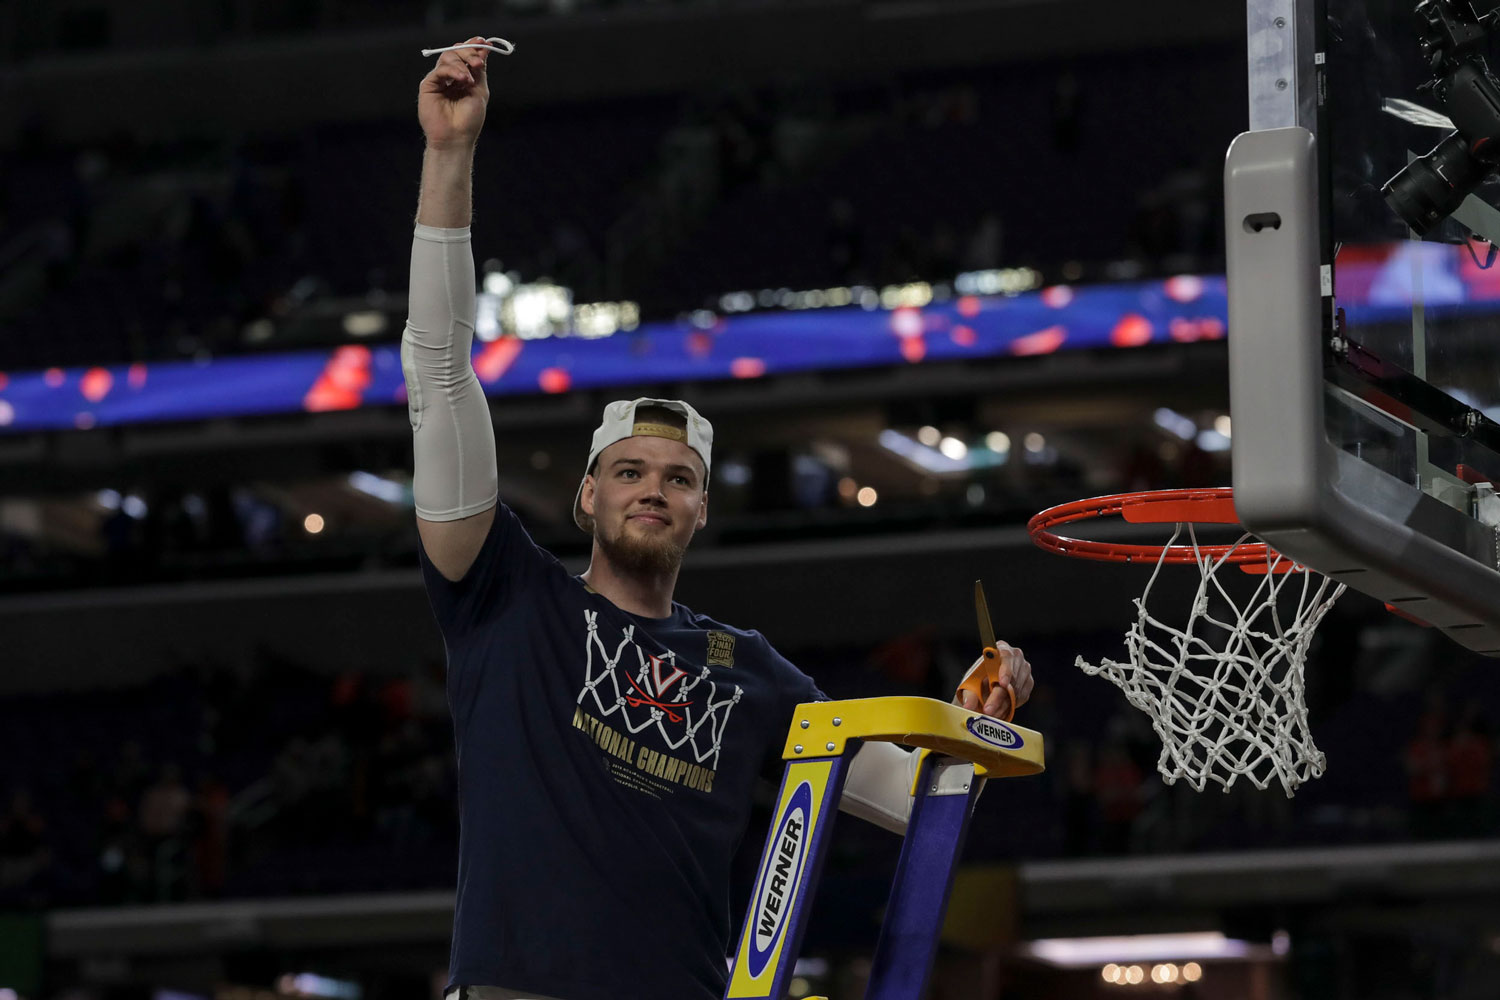 Jack Salt cutting part of the net after winning the 2019 NCAA basketball championship.